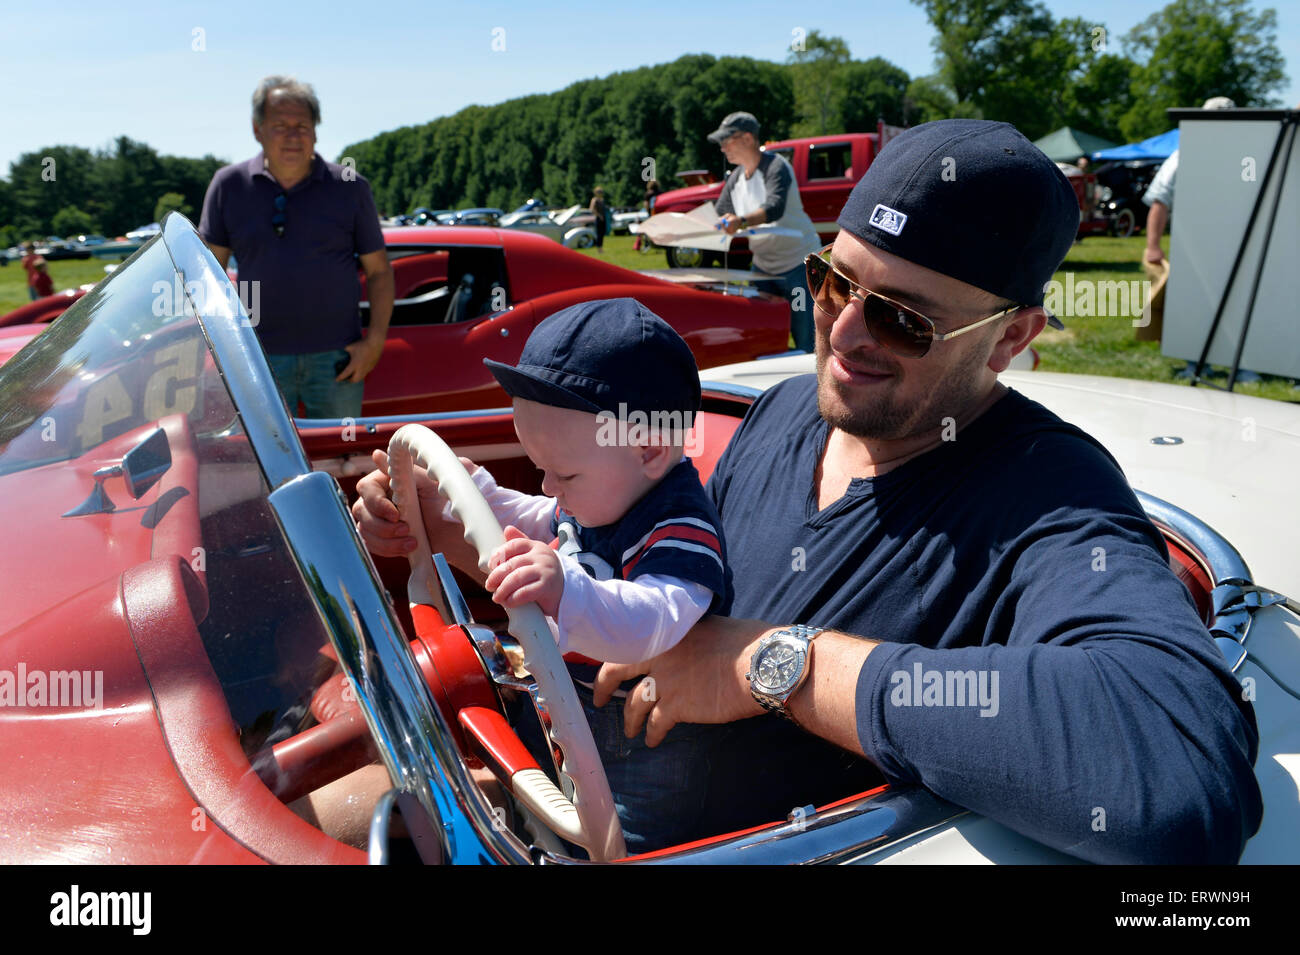 Old Westbury, New York, United States. 7th June 2015. JACKSON STERN, five-months-old, holds the steering wheel of - Stock Image